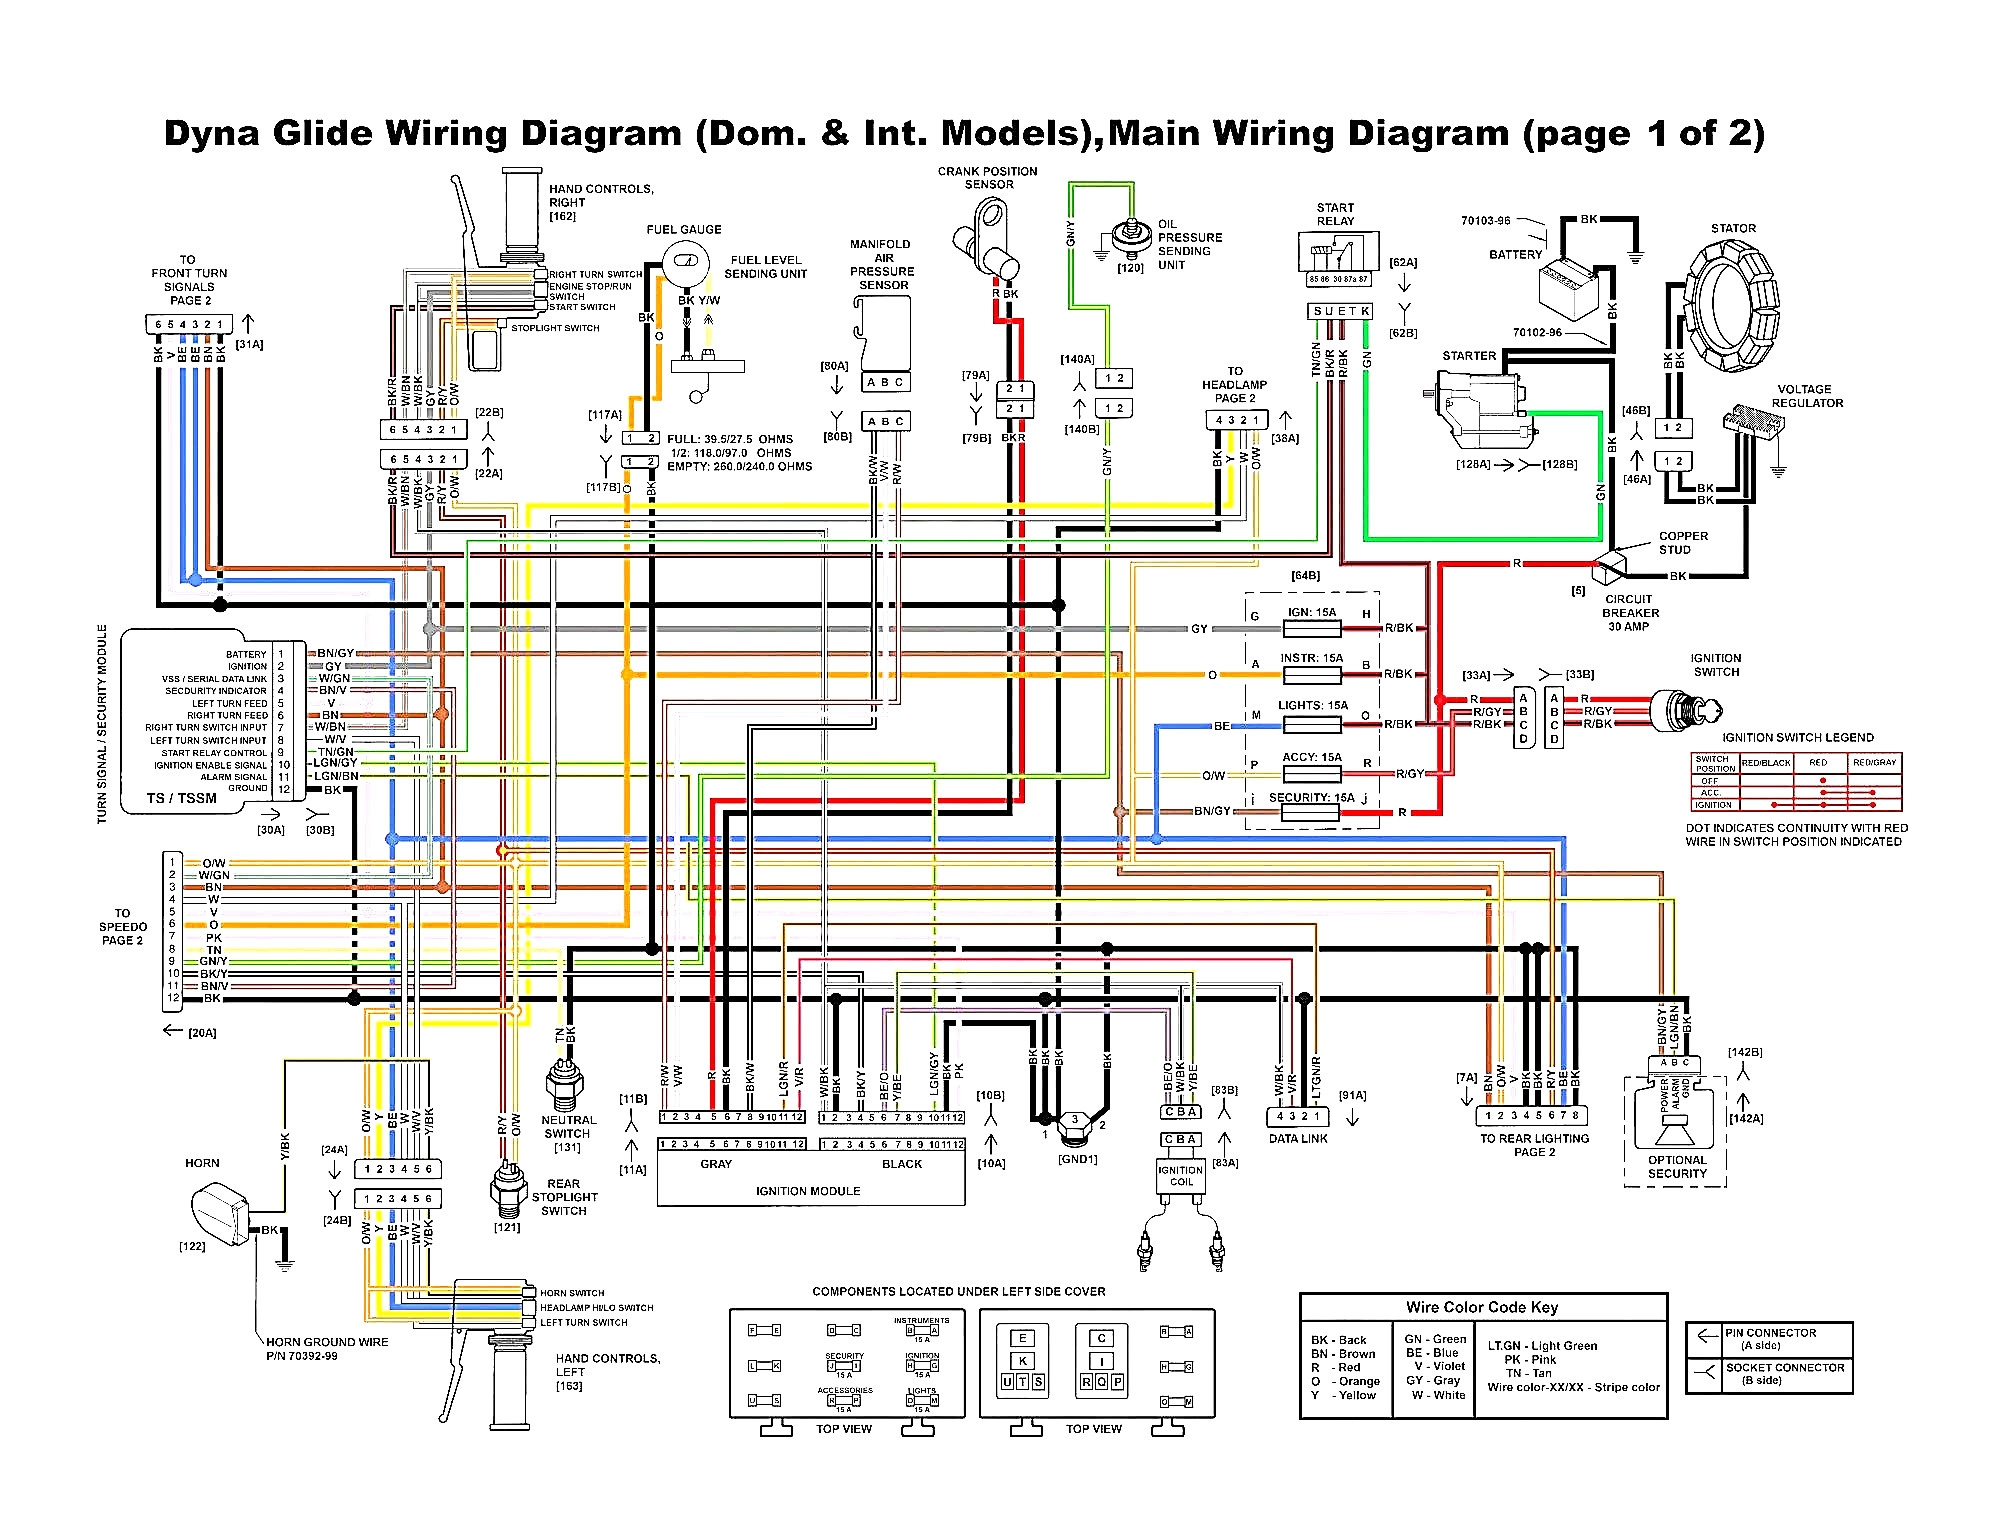 33 Wiring Diagram For Harley Davidson Softail - Wiring ...